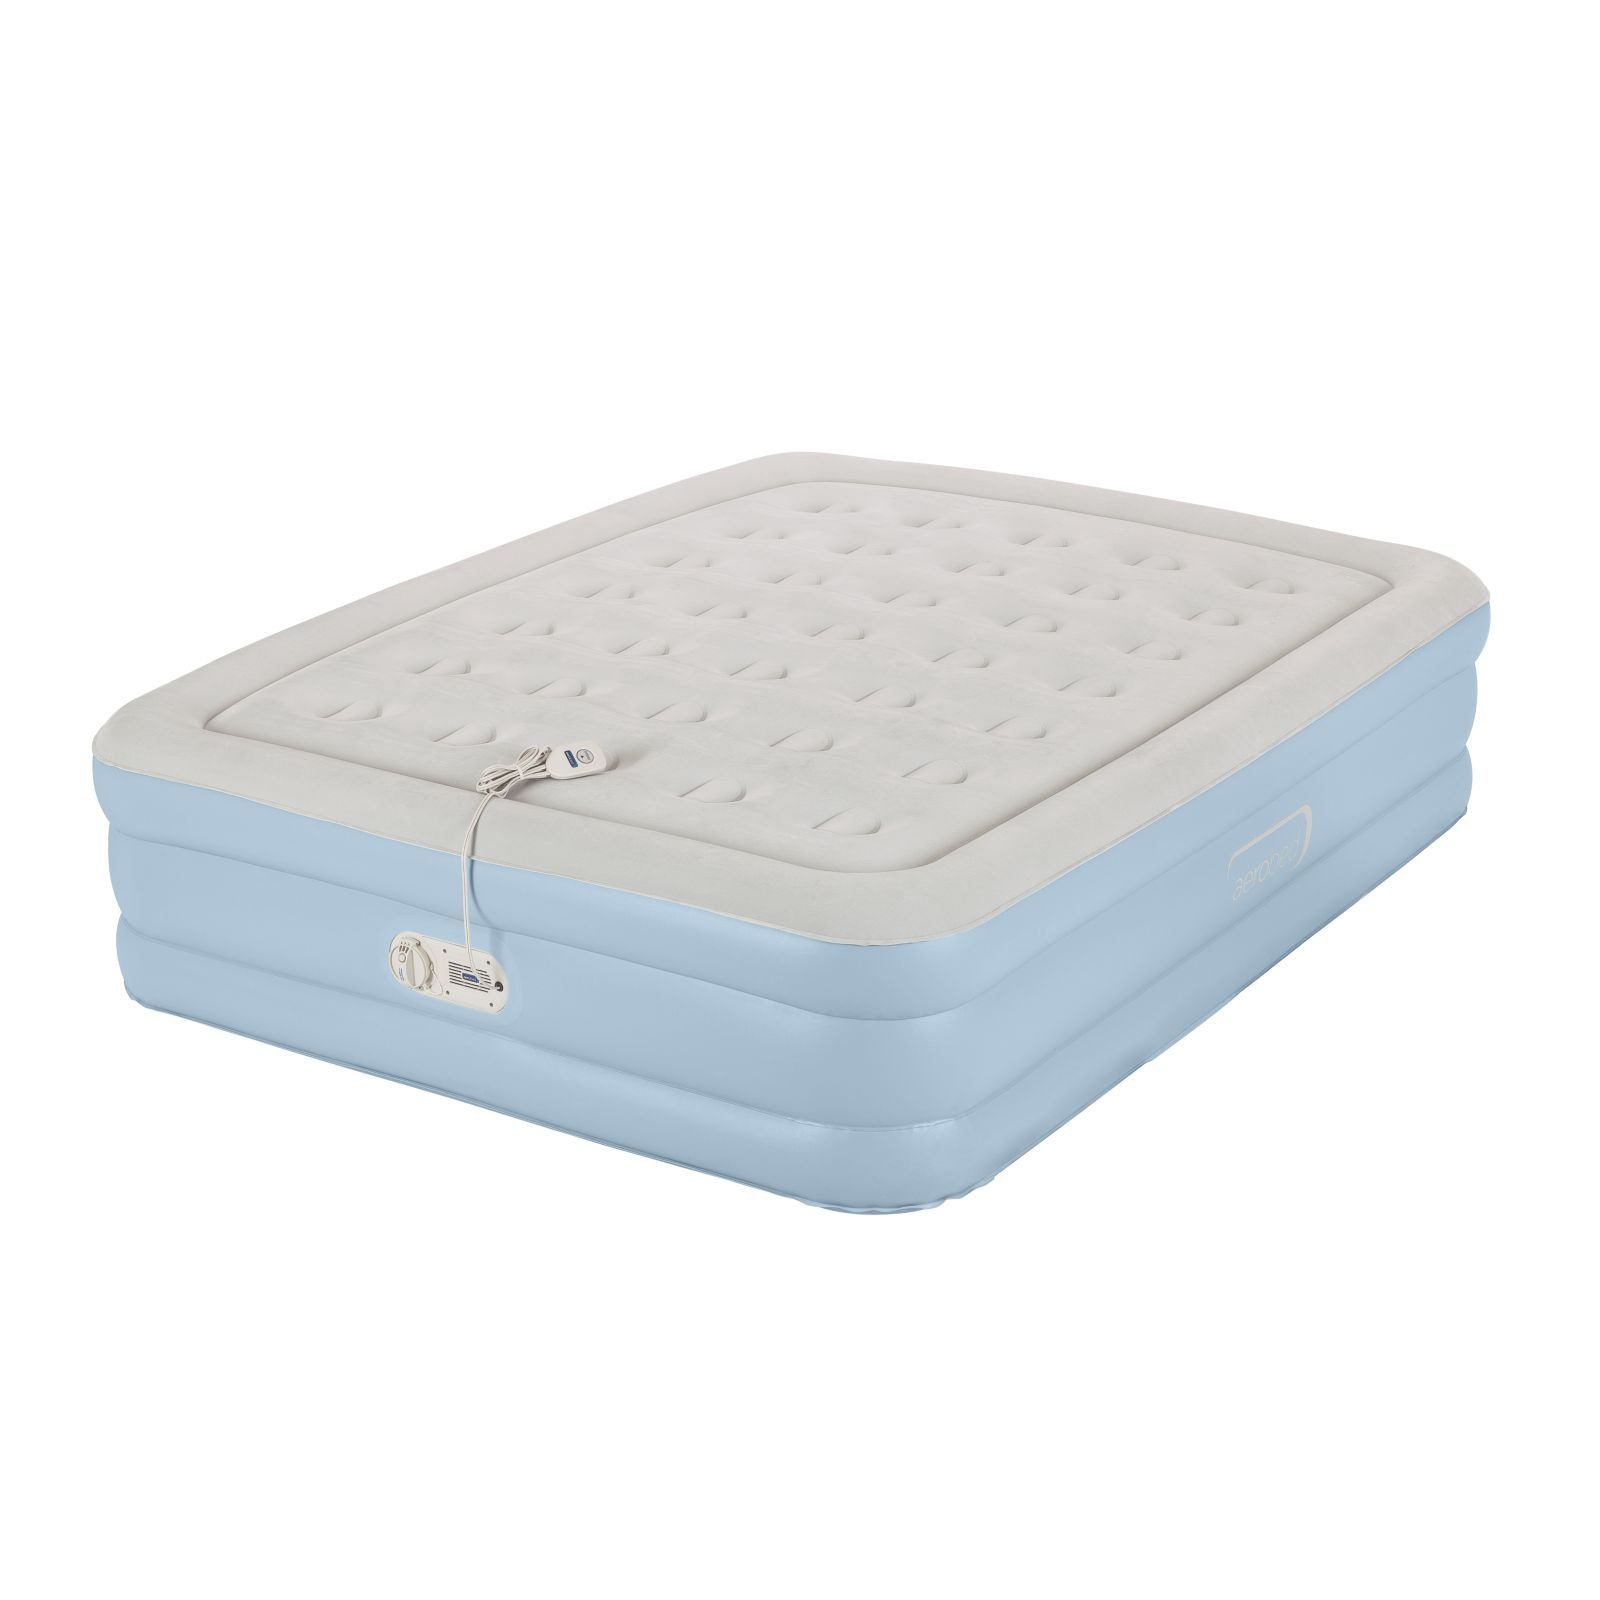 AeroBed One-Touch Comfort Air Mattress - Queen by AeroBed (Image #1)